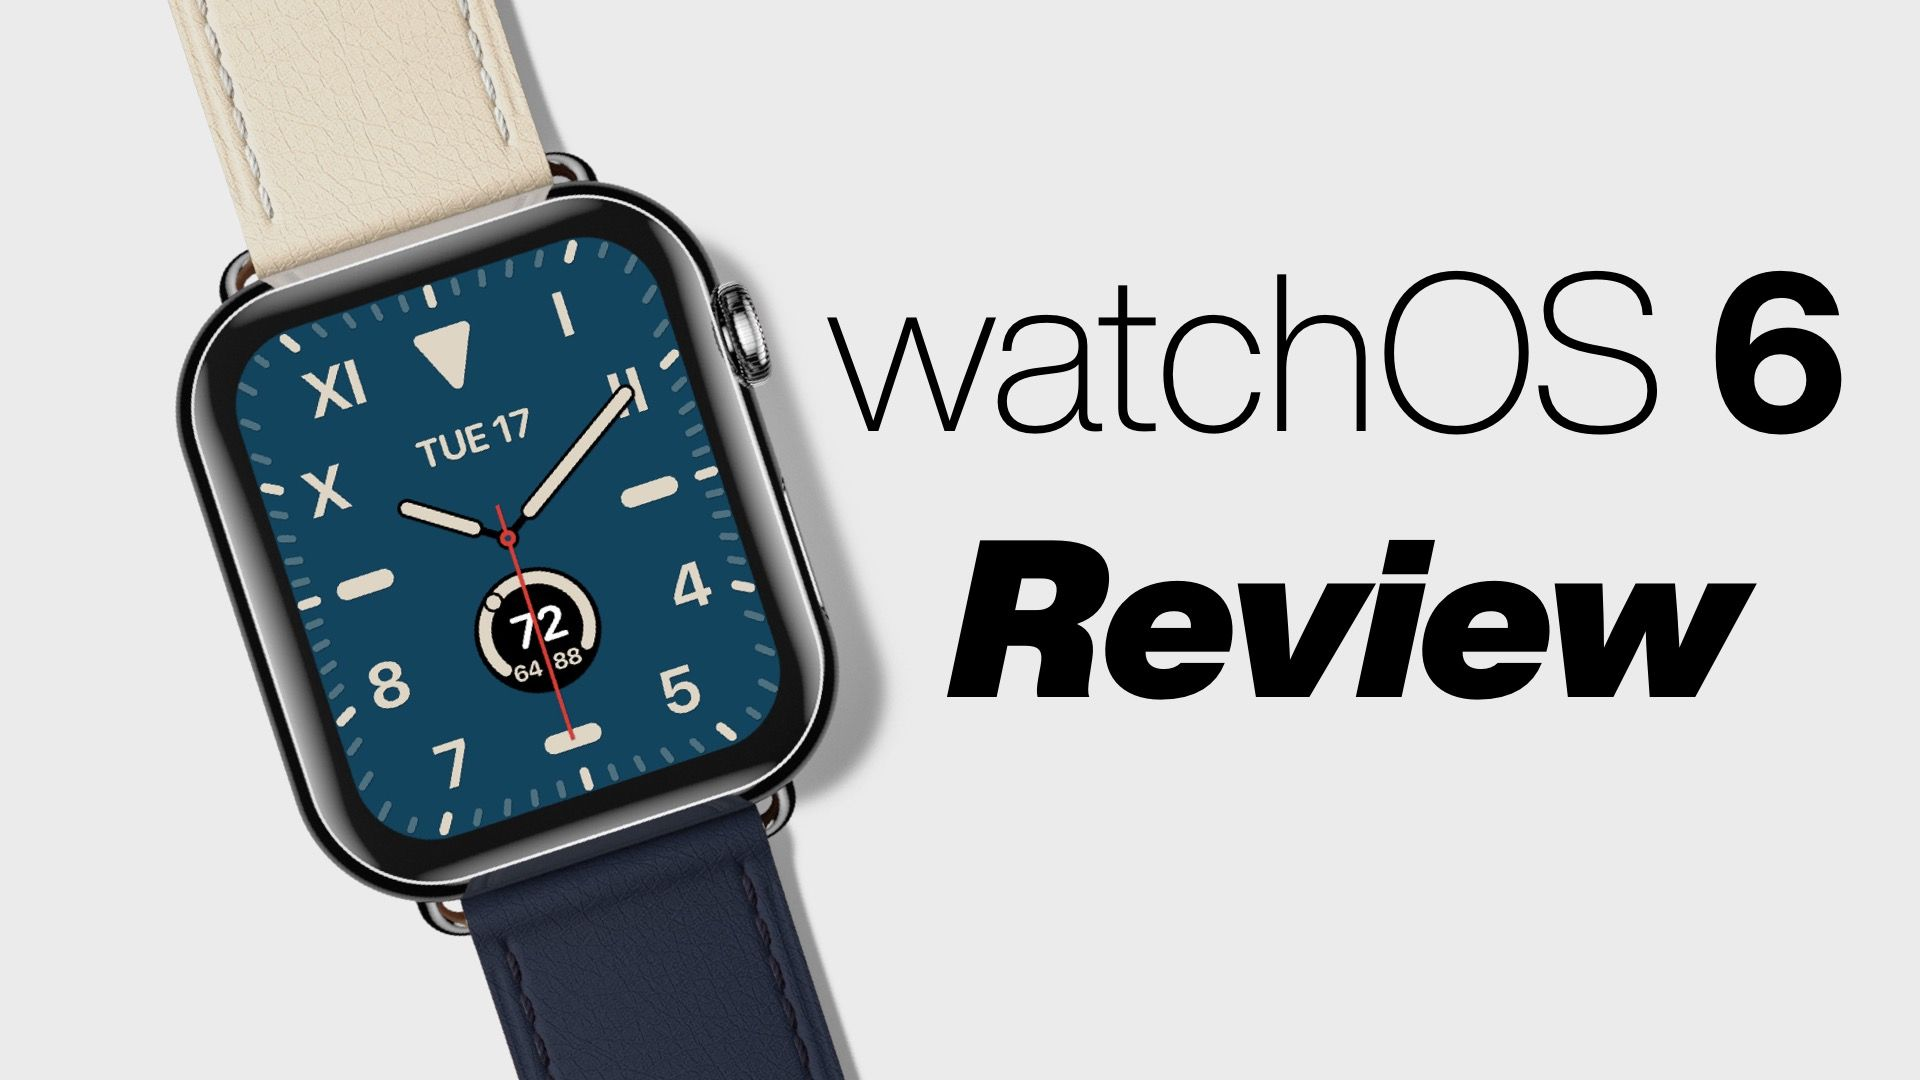 watchOS 6: The BirchTree Review